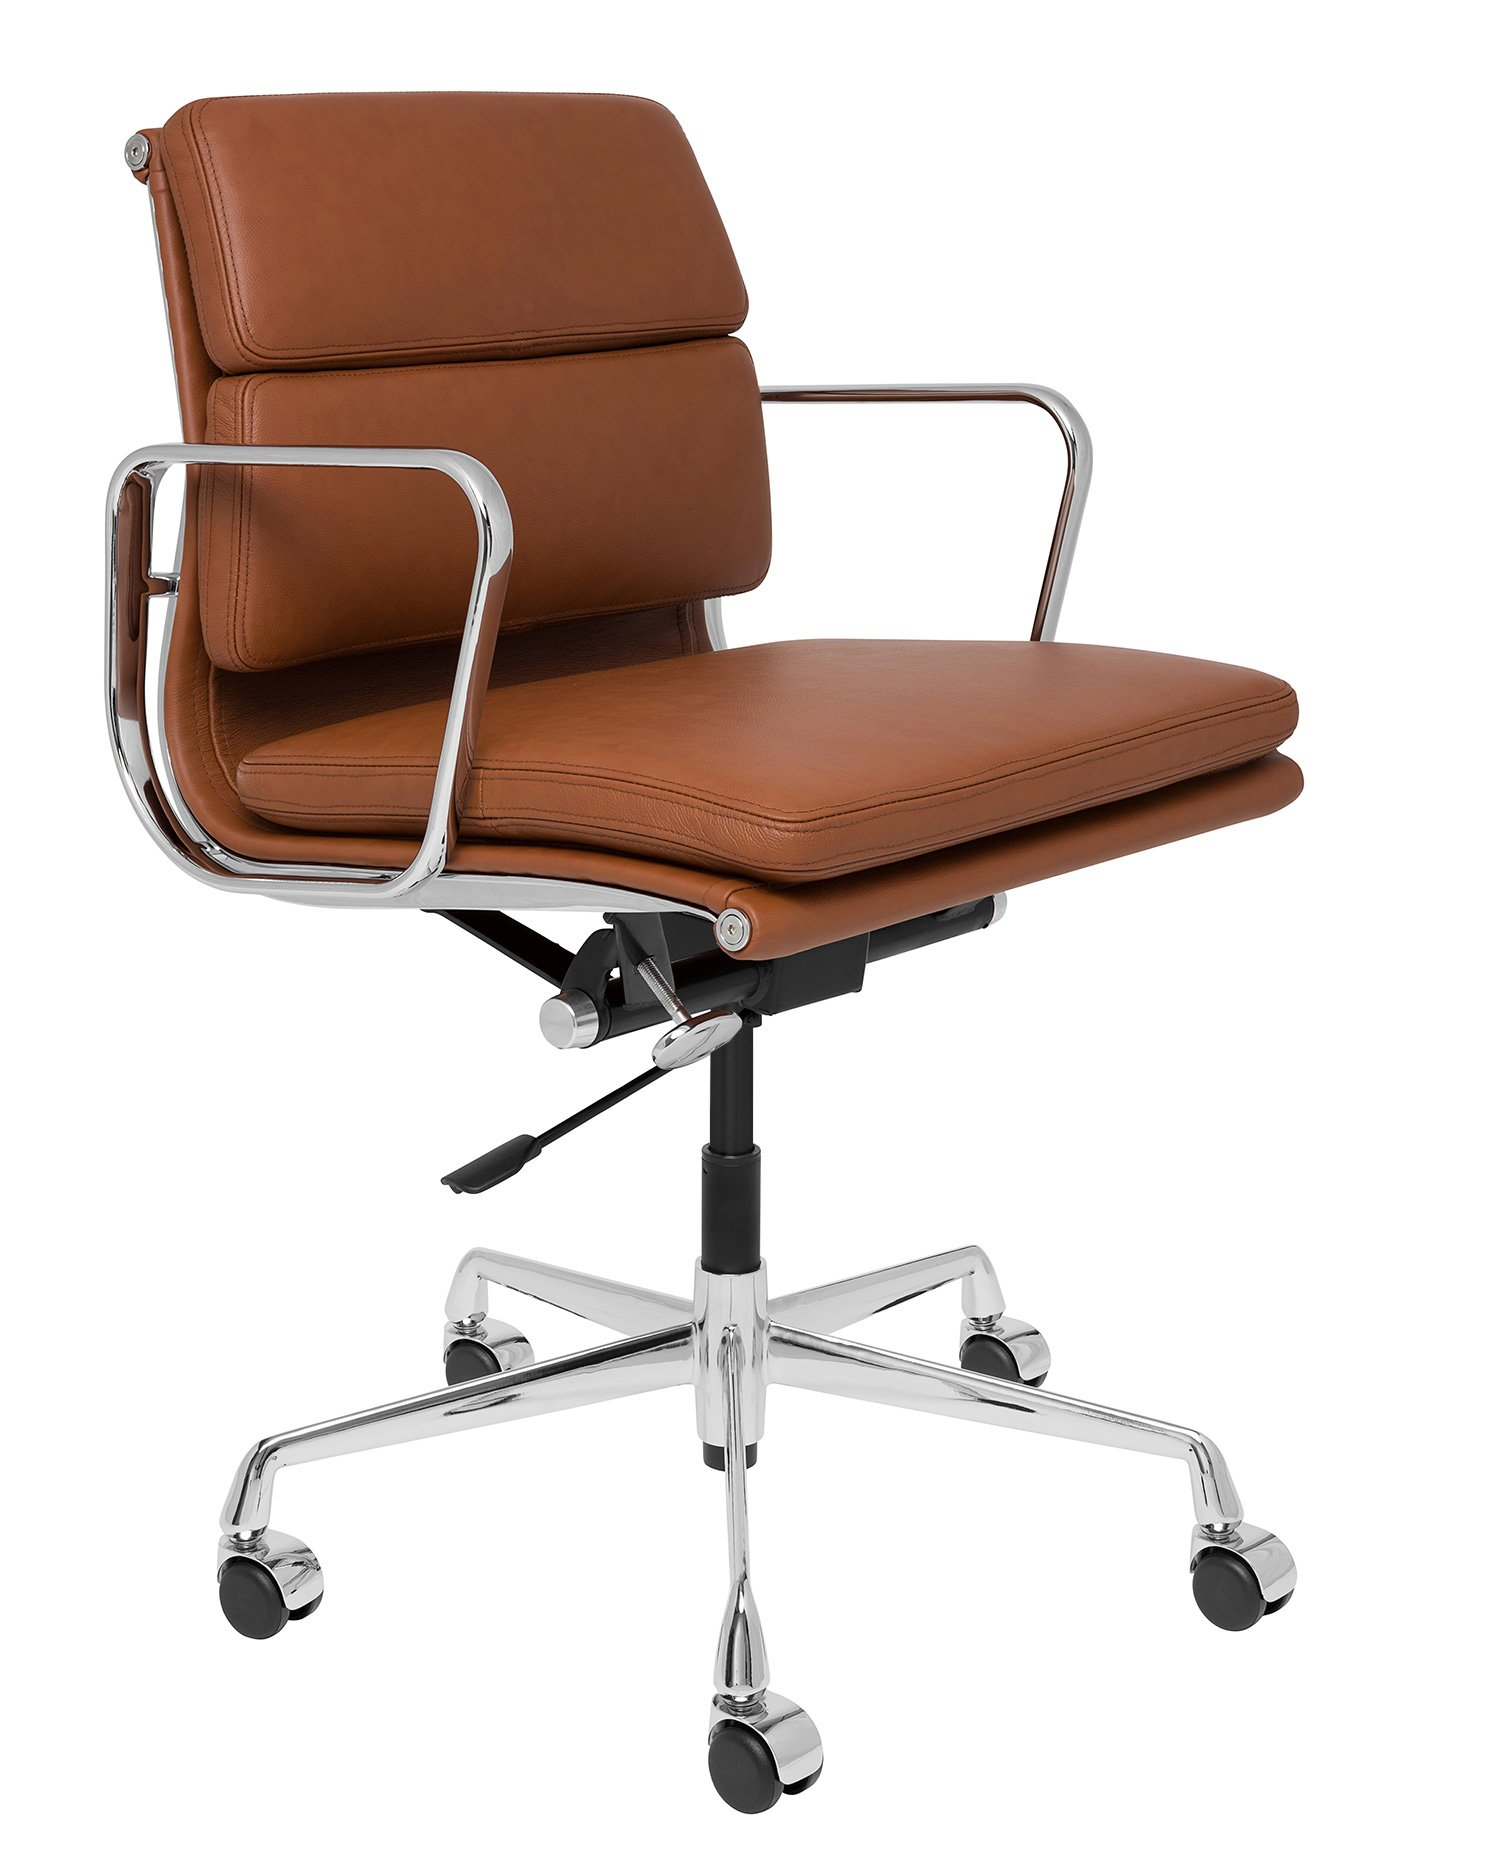 SOHO Premier Management Chair (Soft Pad, Brown) by Laura Davidson Furniture